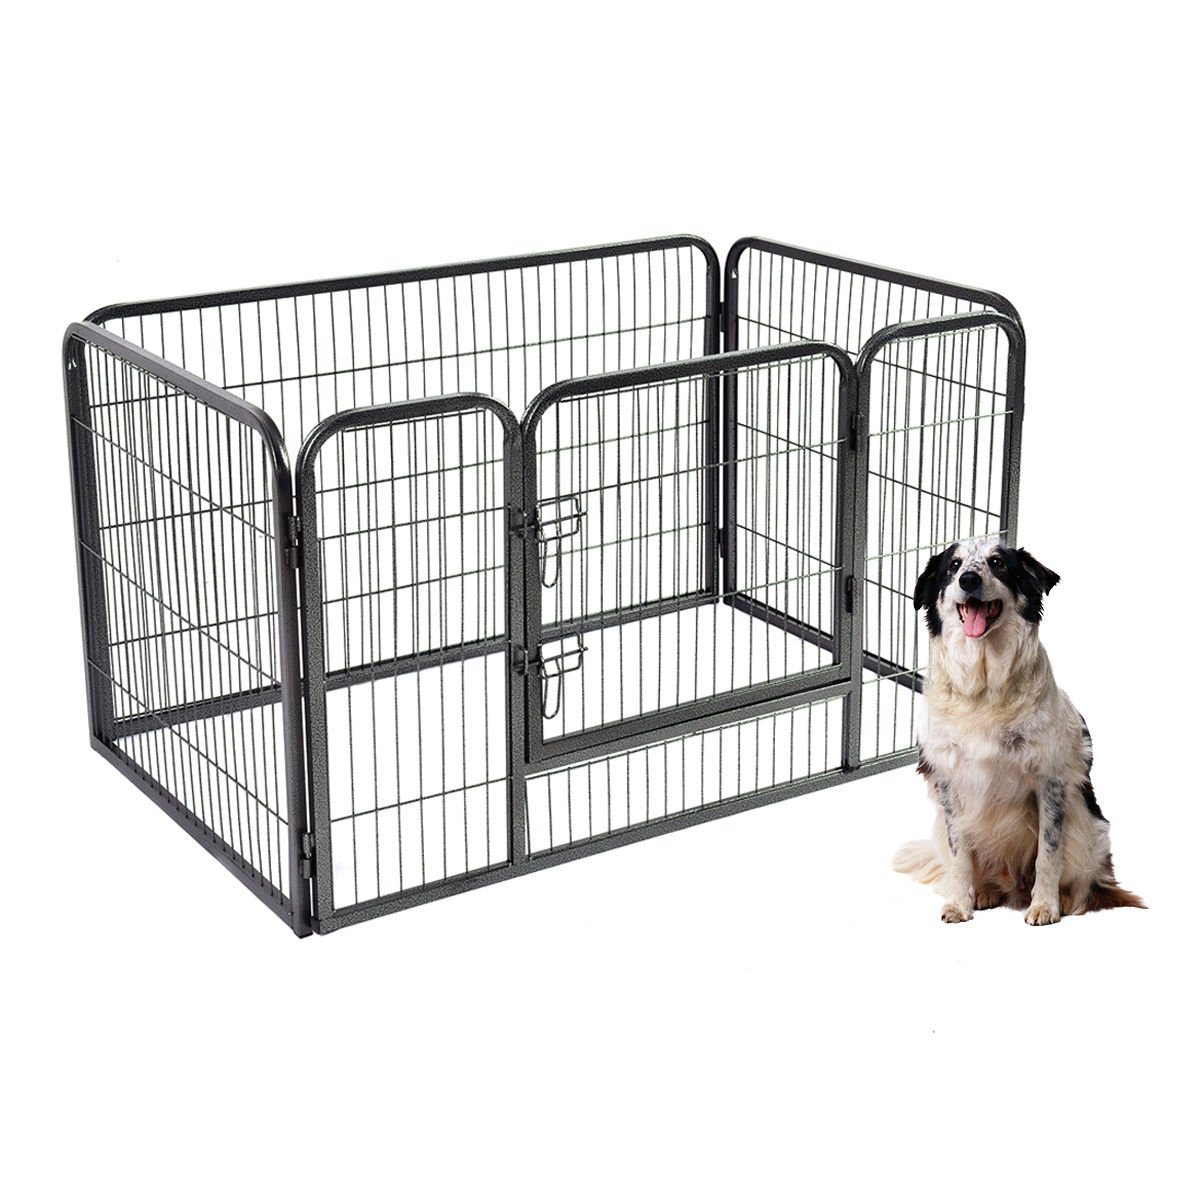 Safstar Metal Pet Playpen Exercise Pen for Dogs Cats Heavy Duty Folding Out Door Fence 4 Panels Each (L: 49''x32''x36'')